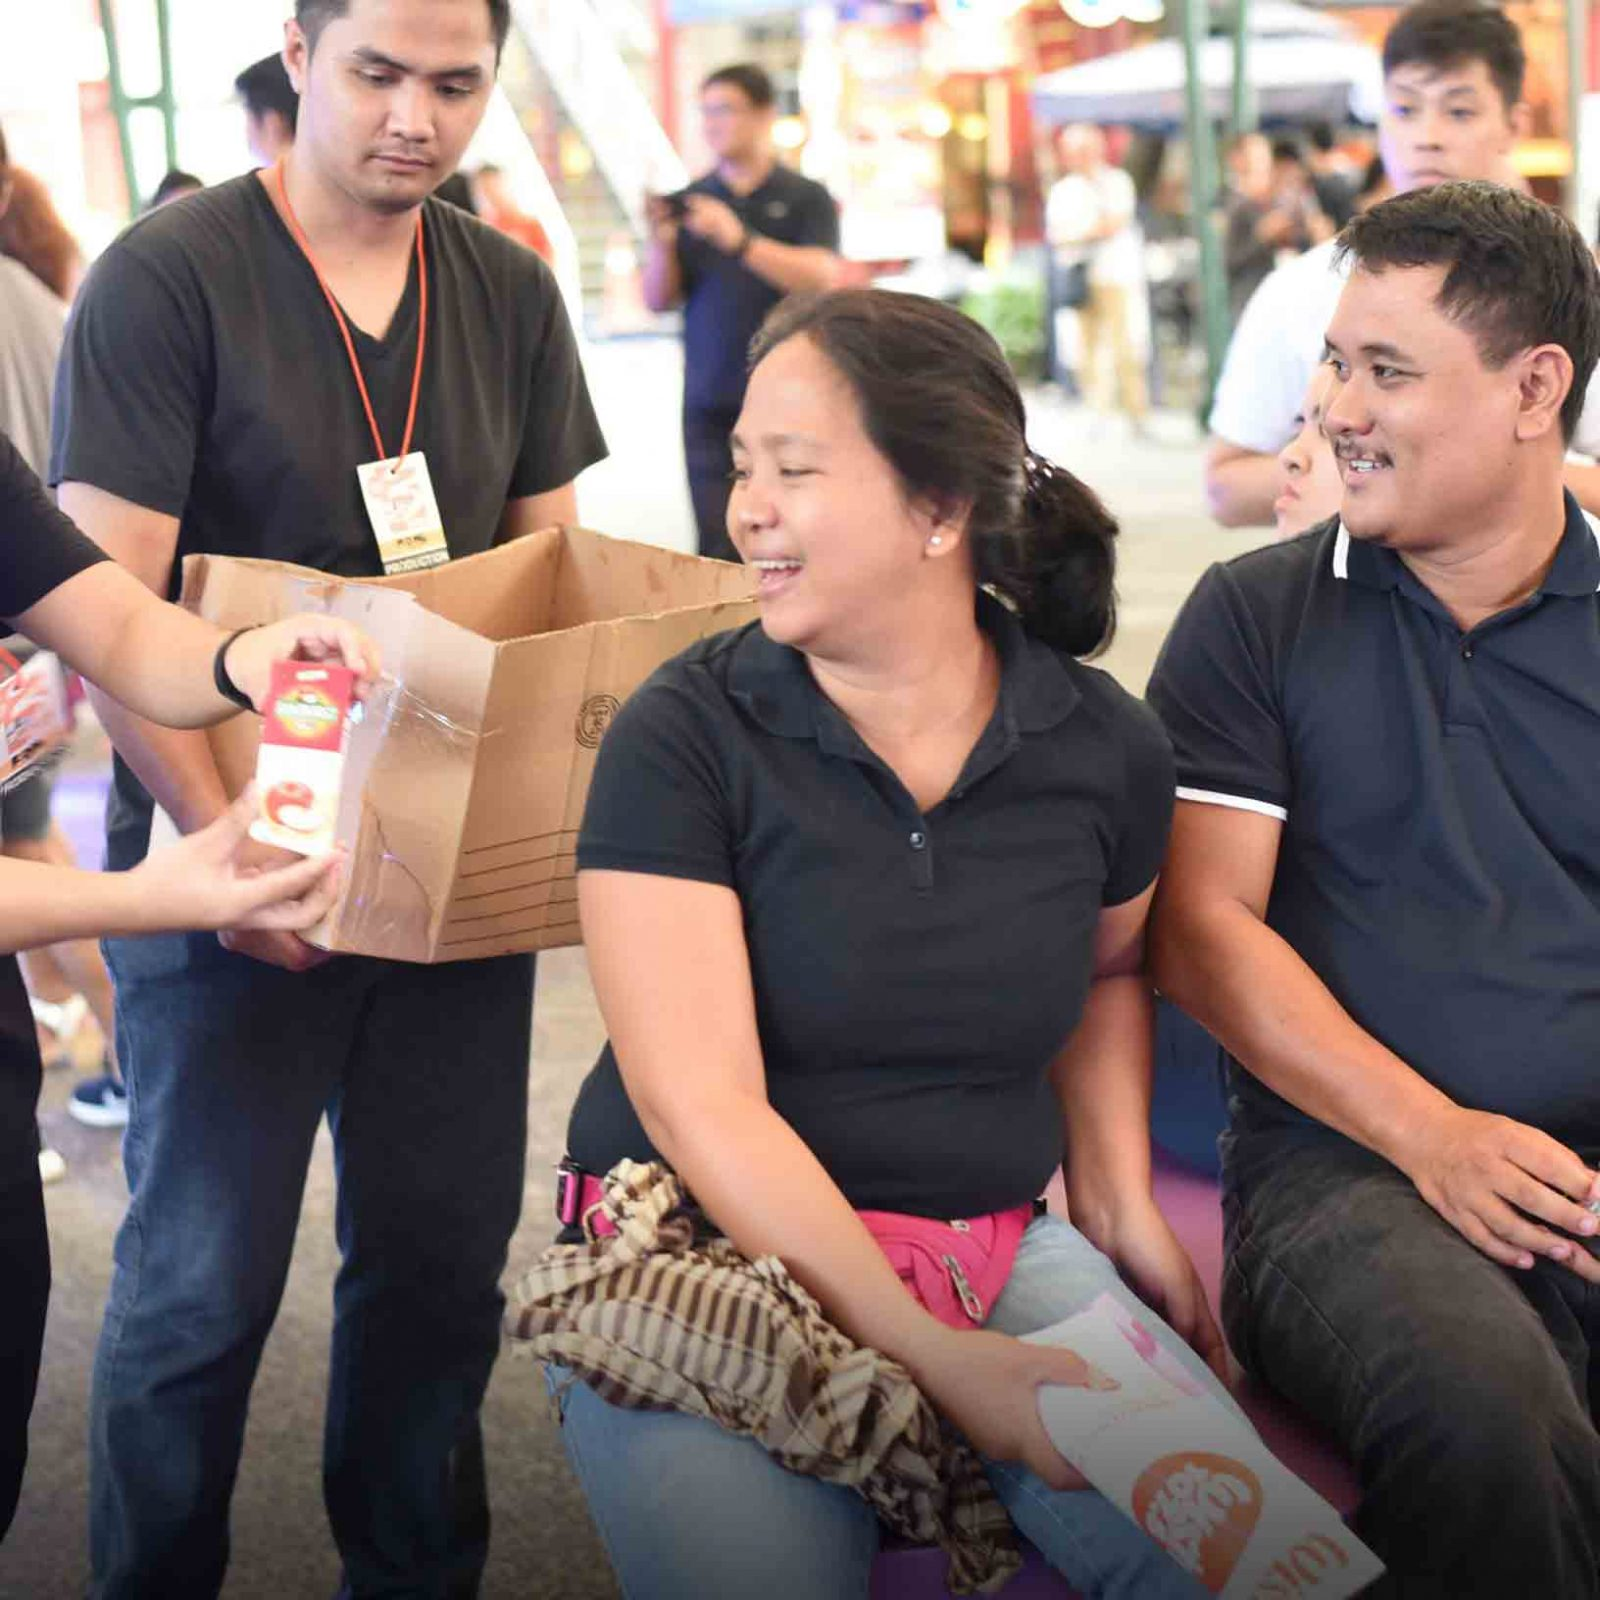 The Wish 107.5 crew offers free refreshments to Wishers as they listen to different OPM acts during the THREEmendous Thanks party held at the Eastwood Central Plaza.   (Photo courtesy of Photoville International)